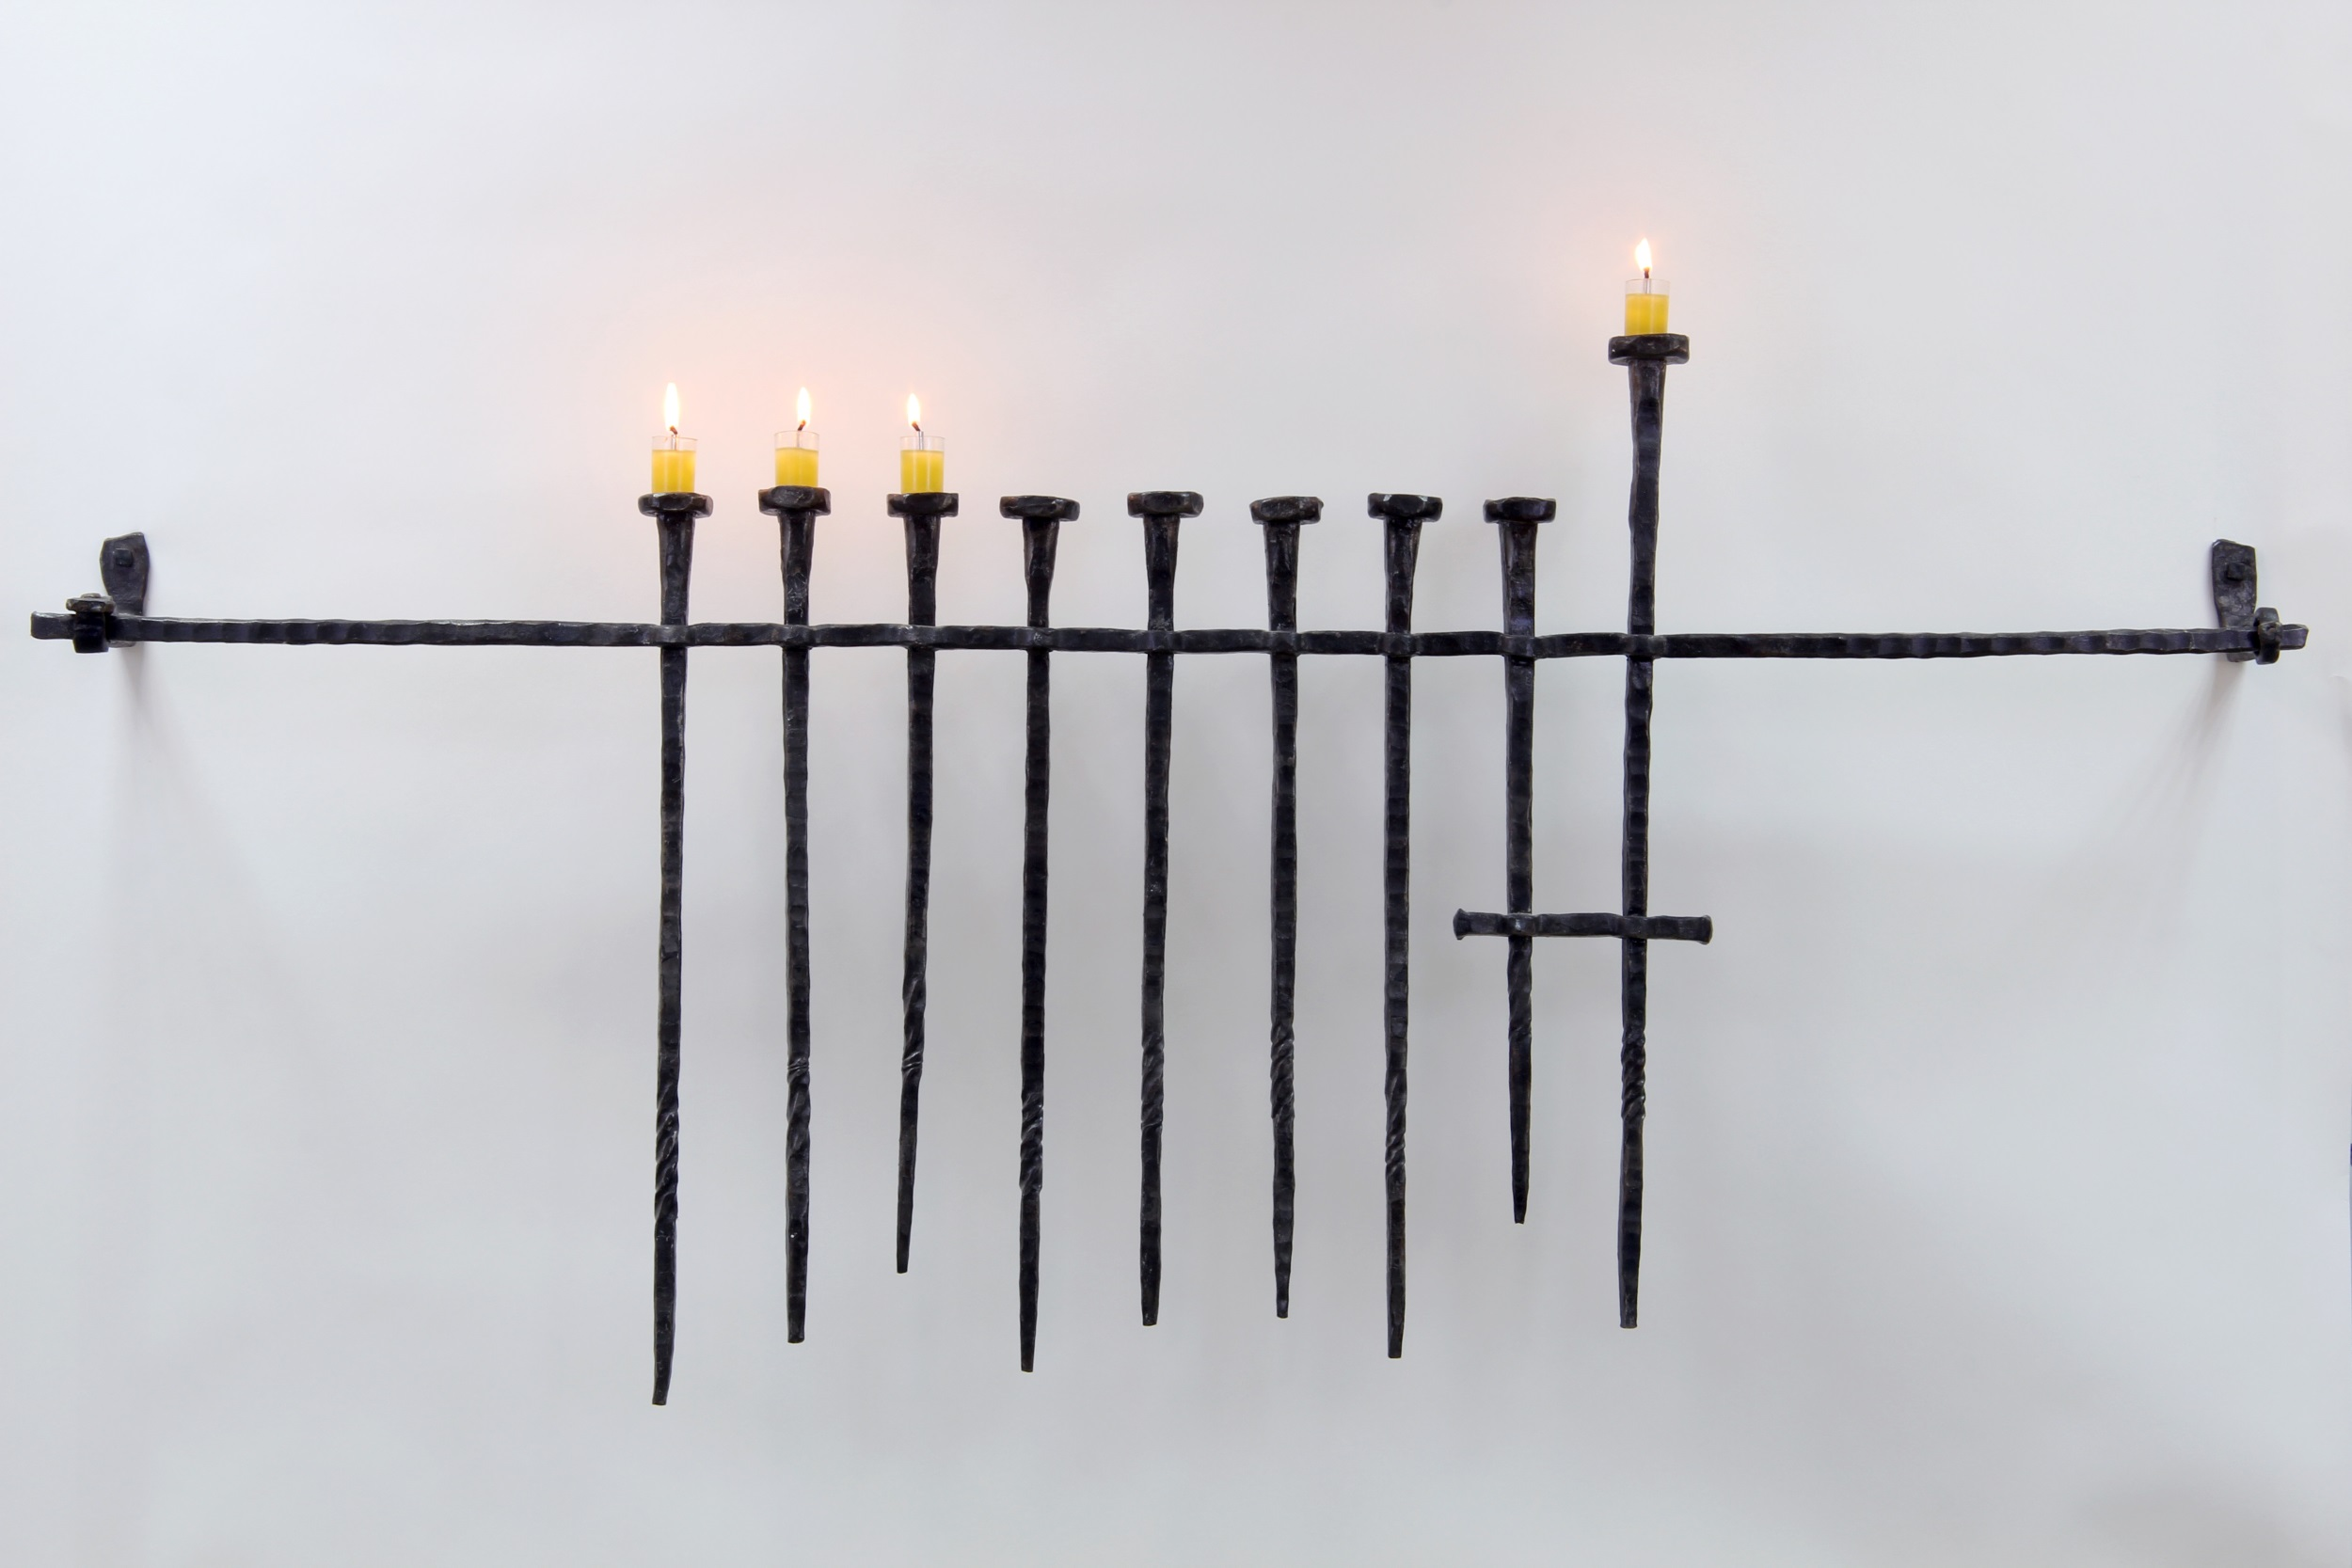 'Stake Hanukkah Menorah' – Iron Menorah of Hanging Stakes